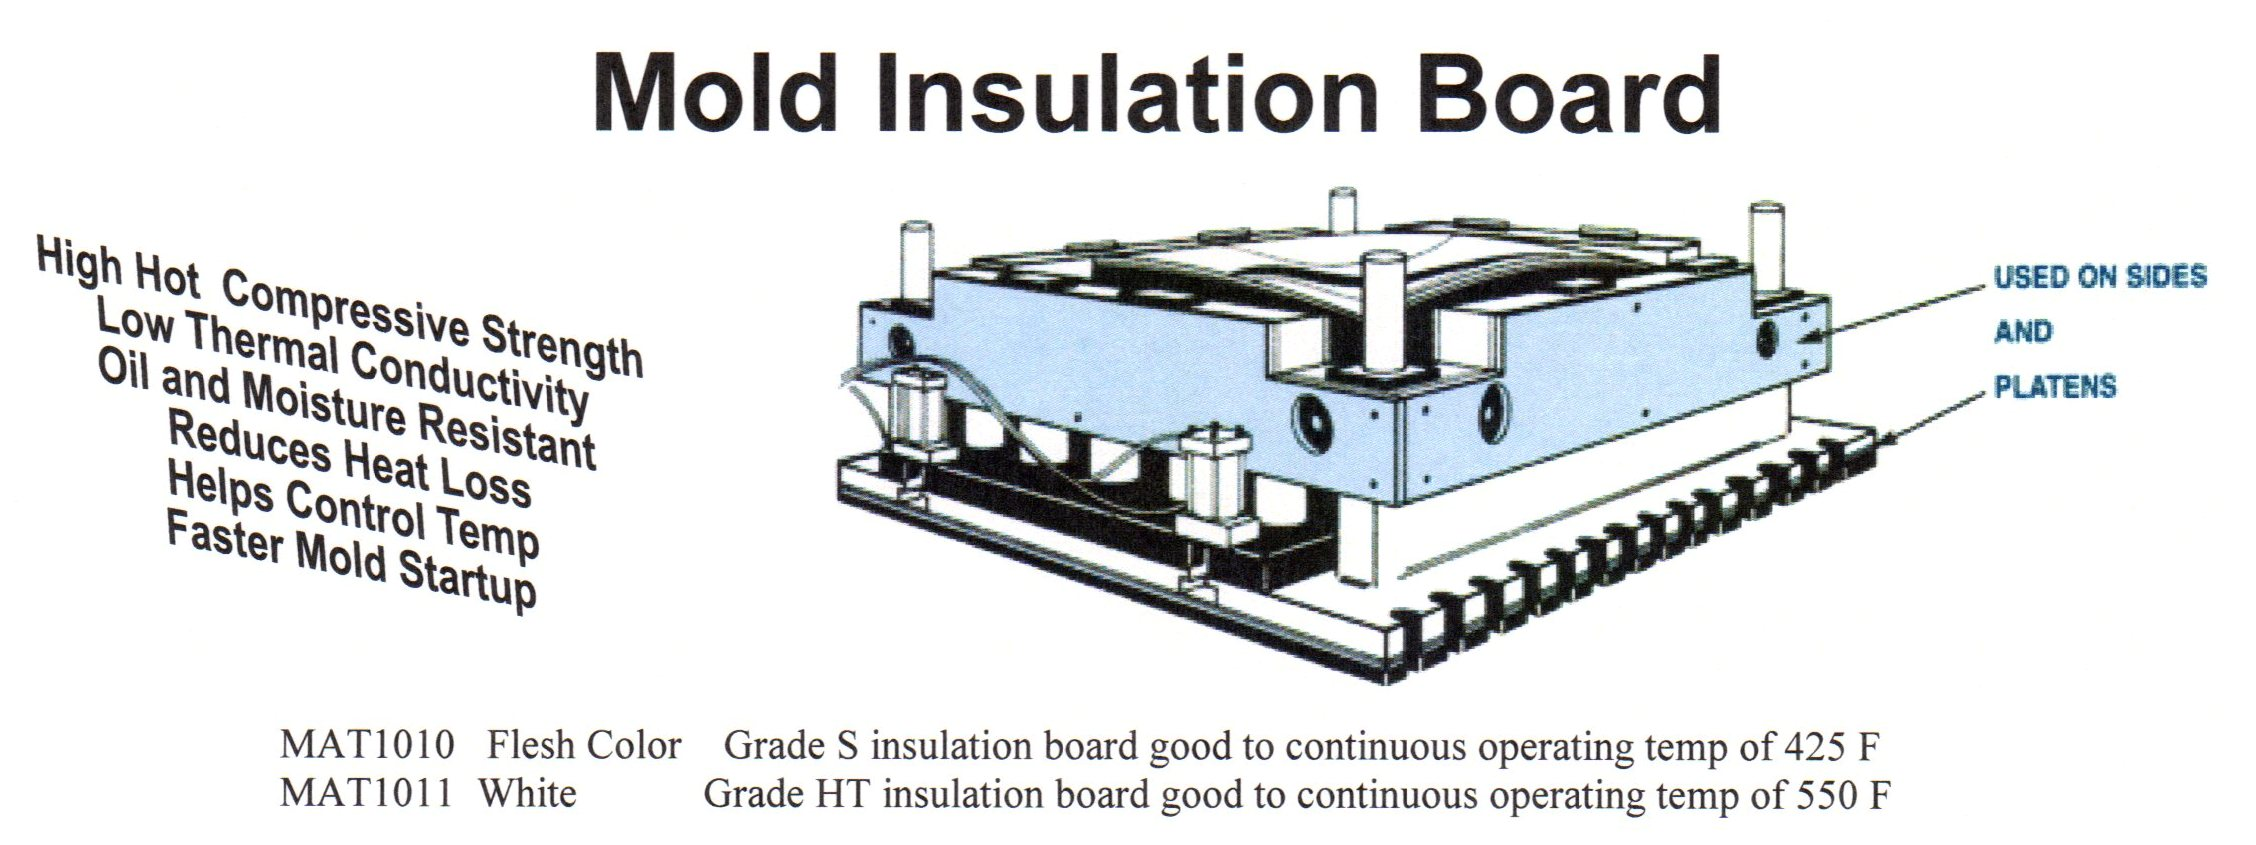 Mold Insulation Board